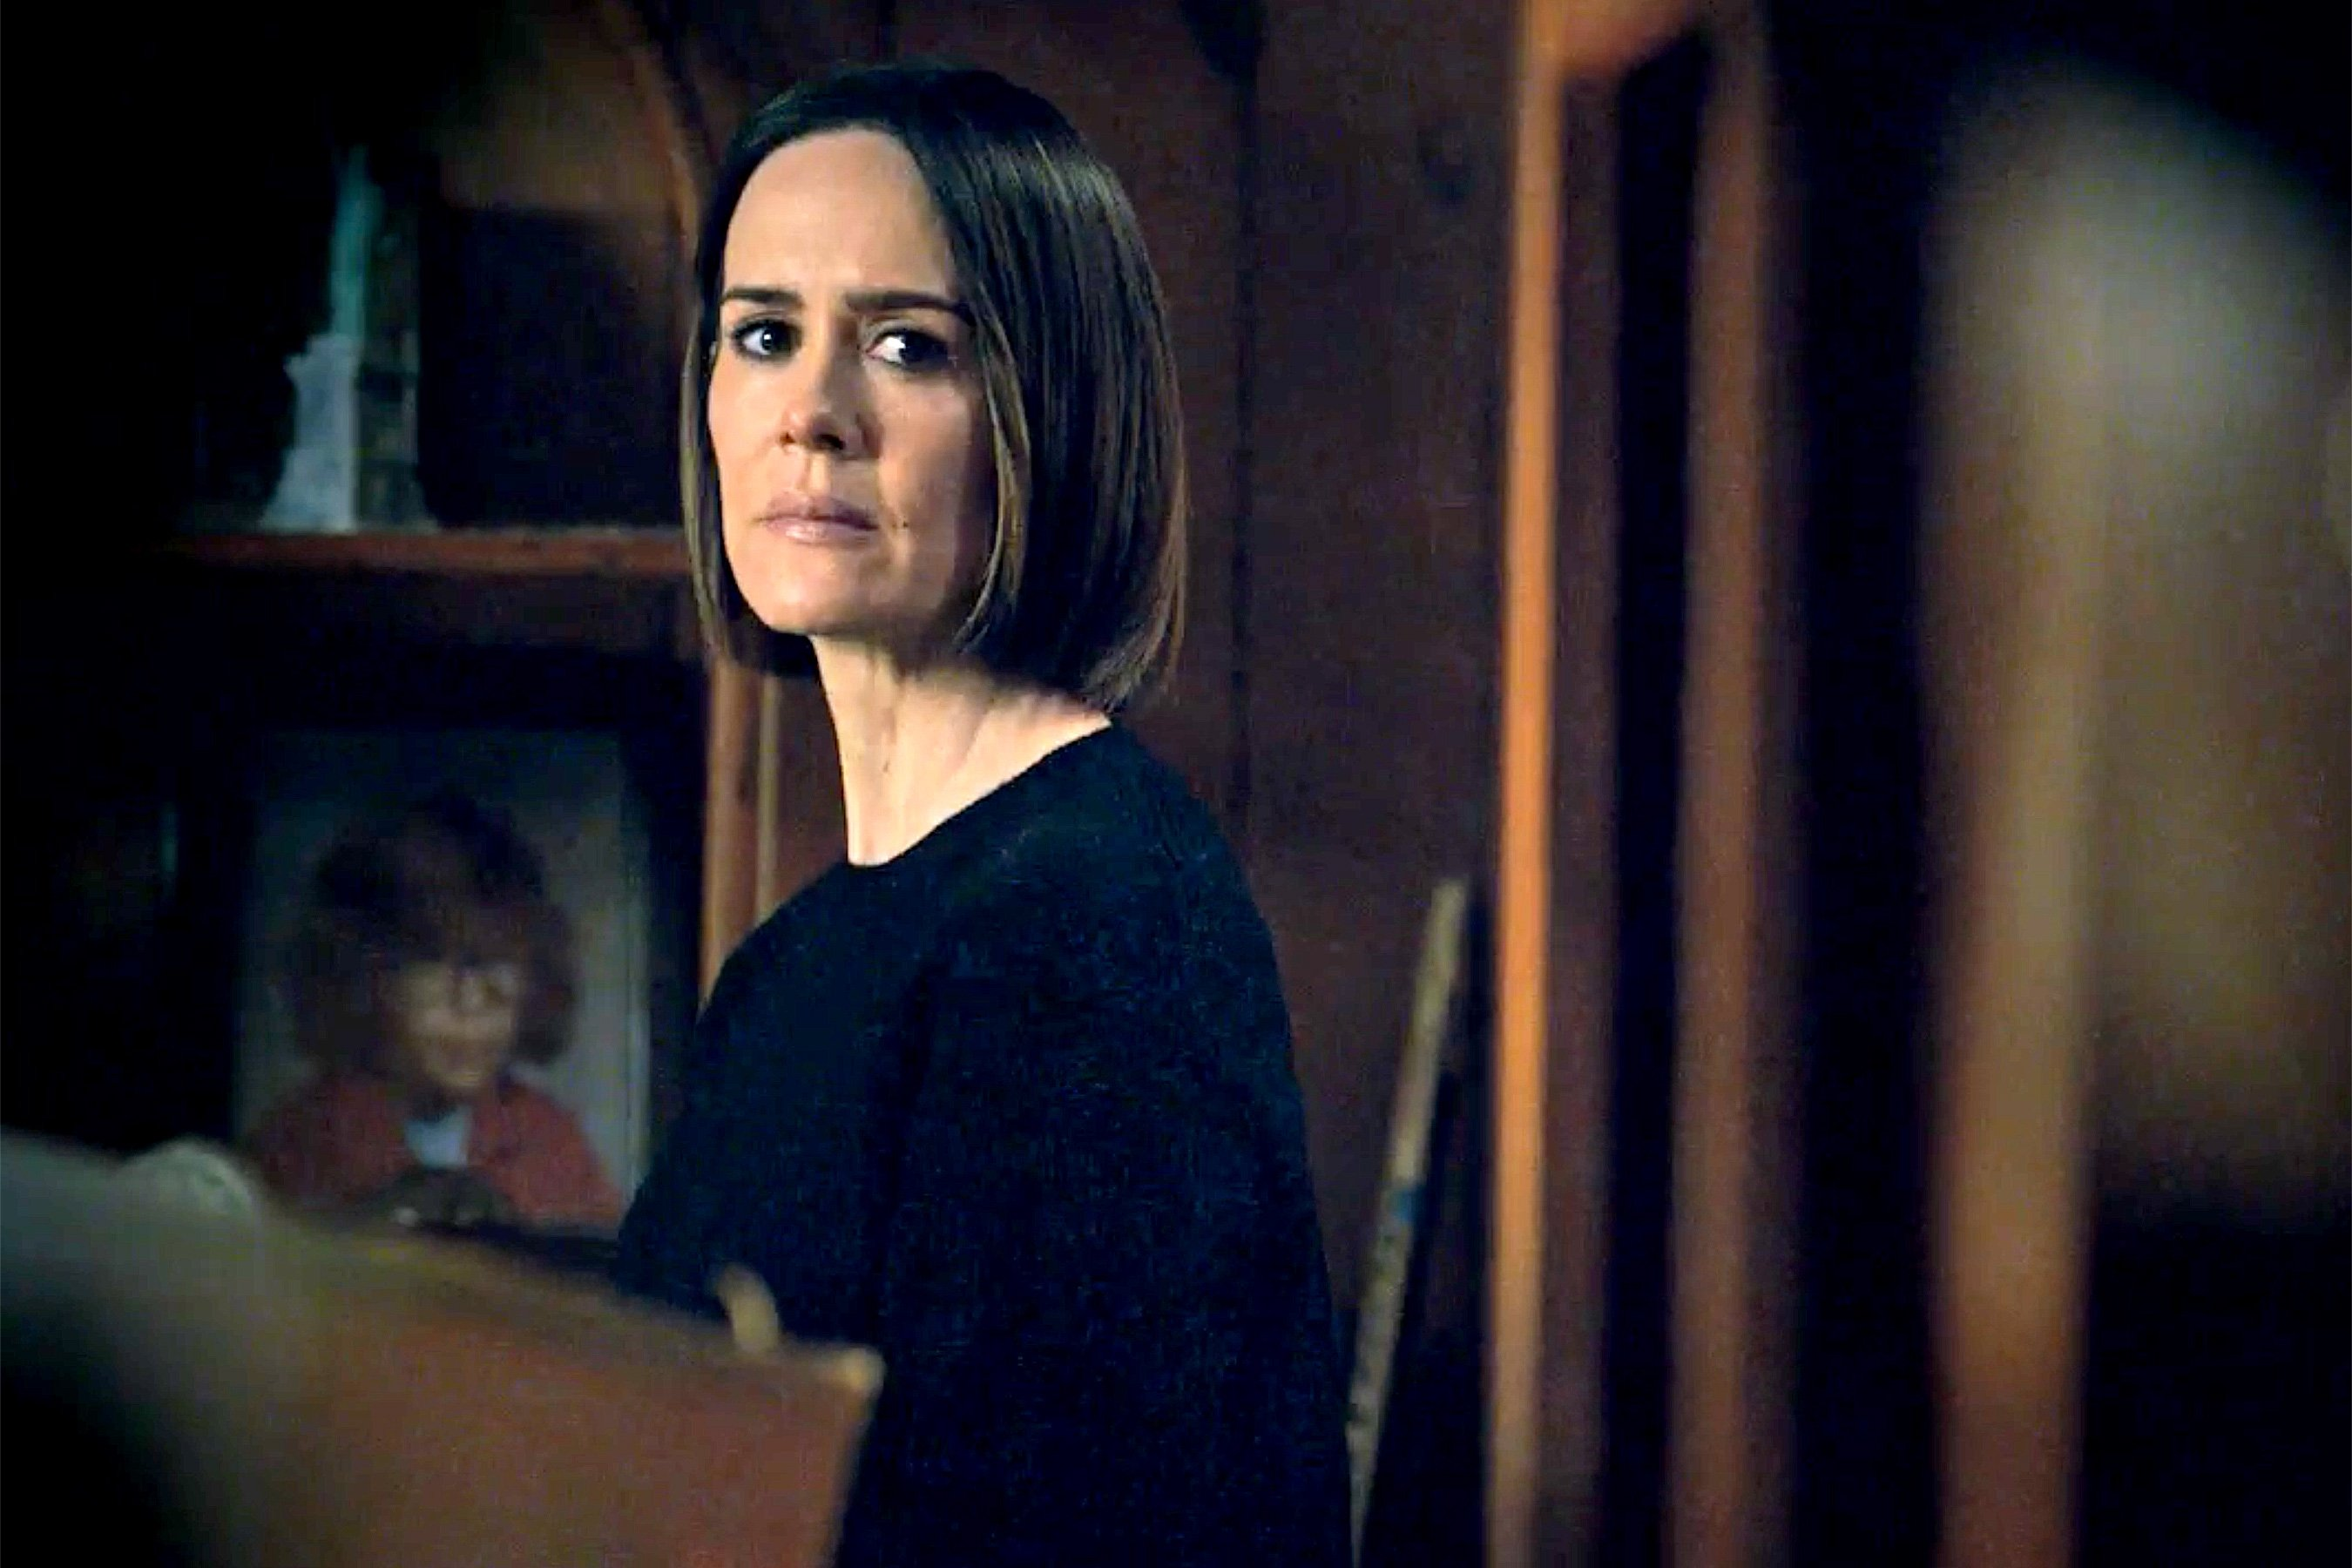 American Horror Story 8: Sarah Paulson will be wearing 'dental appliances,' says Ryan Murphy